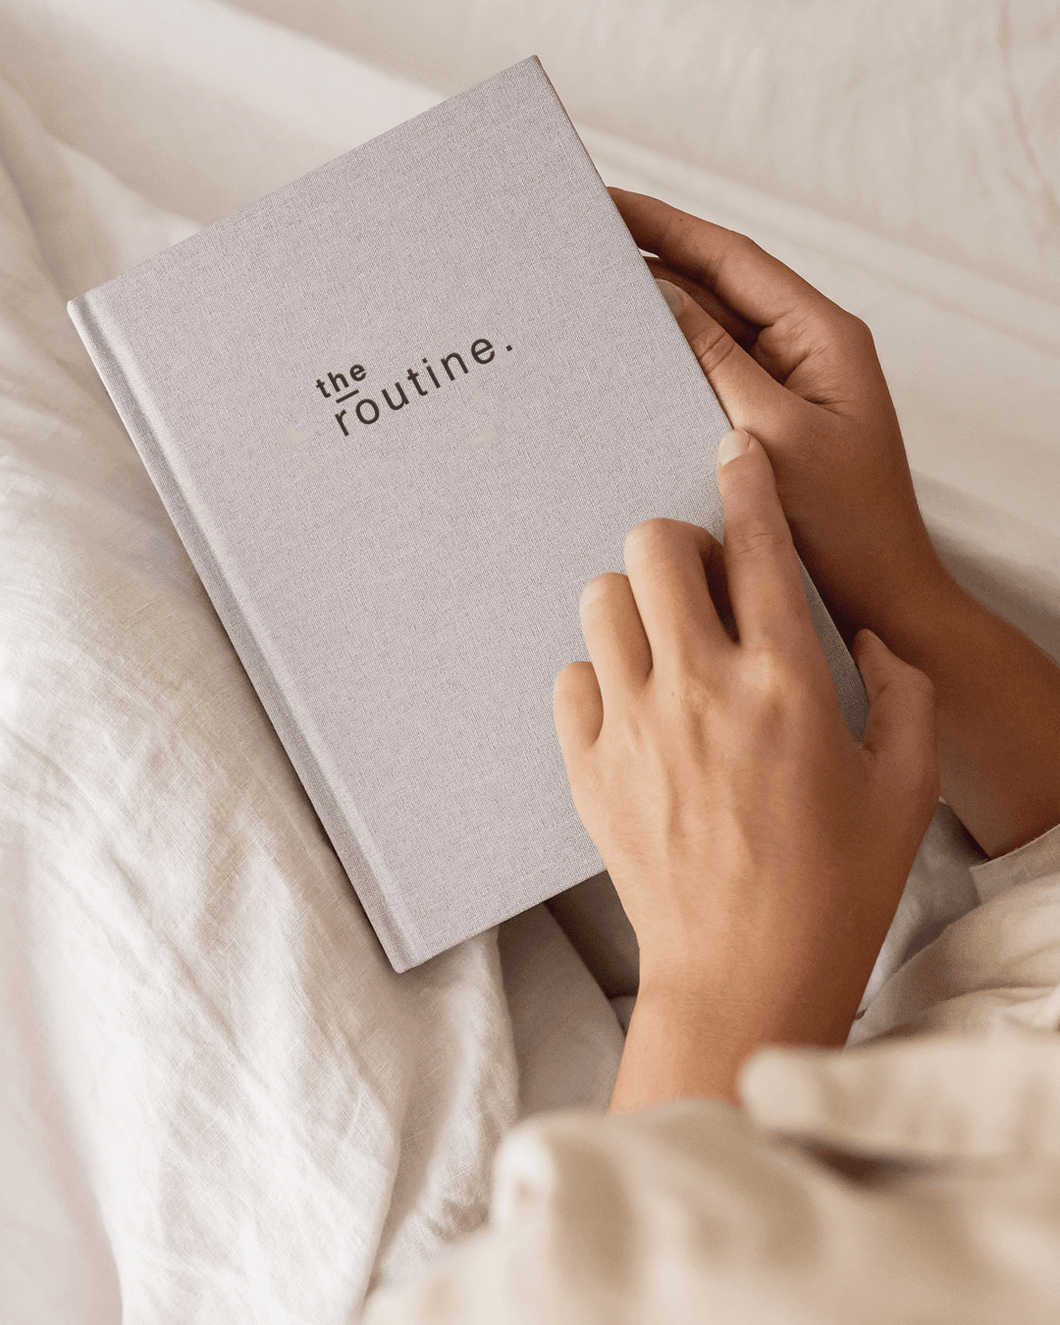 The Daily Routine Journal